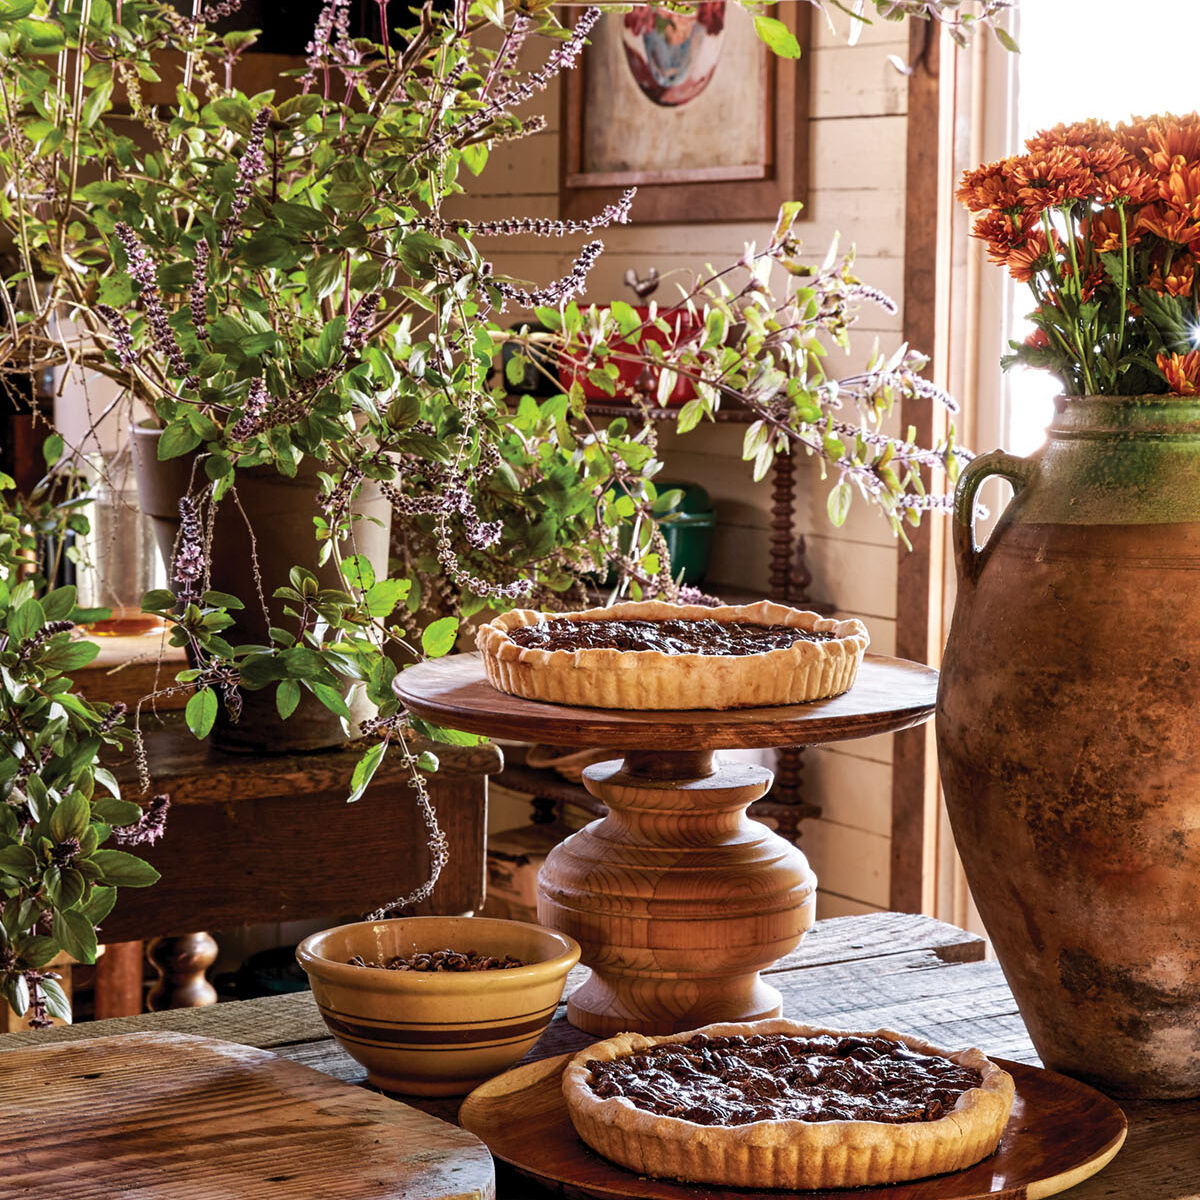 Pies that look this good become their own decoration on a beautiful table.